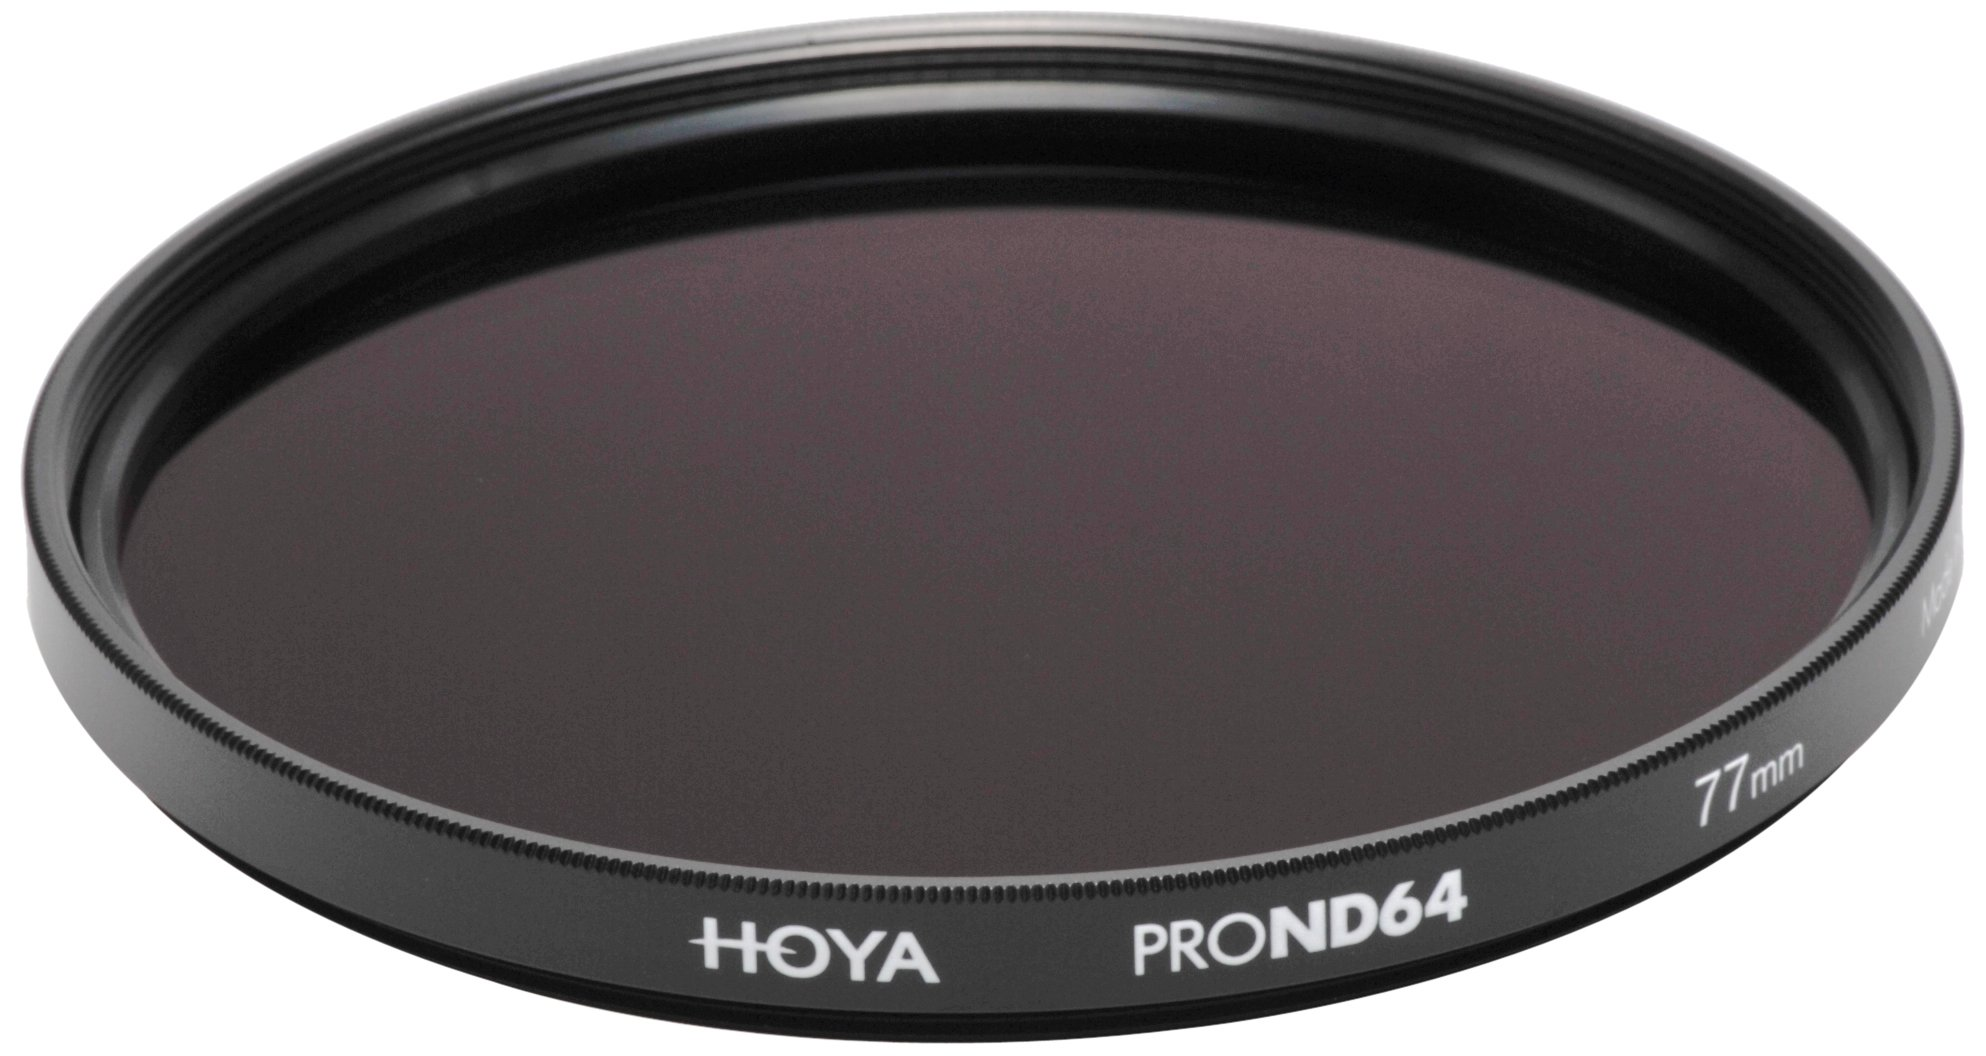 Hoya PROND 52mm ND 64 (1.8) 6 Stop ACCU-ND Neutral Density Filter XPD-52ND64 by GadgetCenter